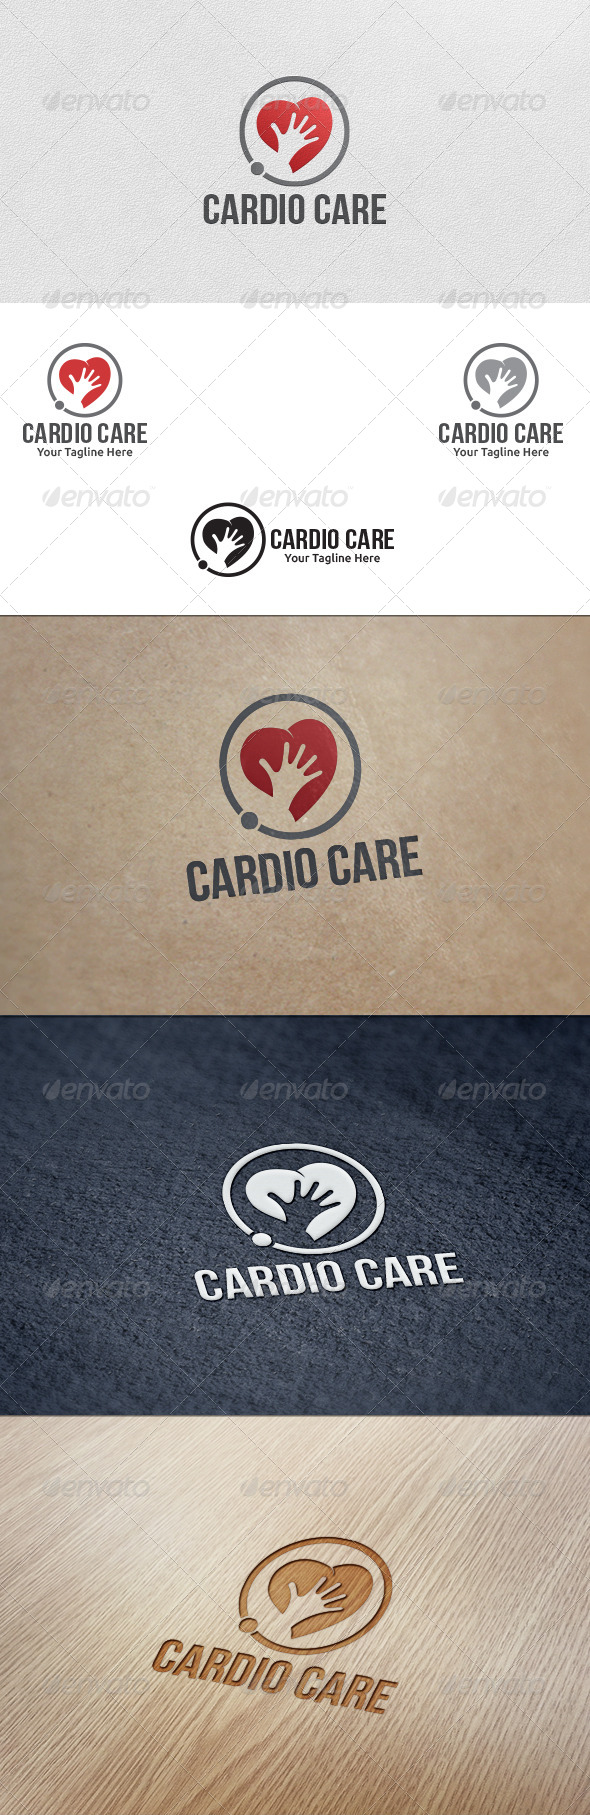 GraphicRiver Cardio Care Logo Template 5576519